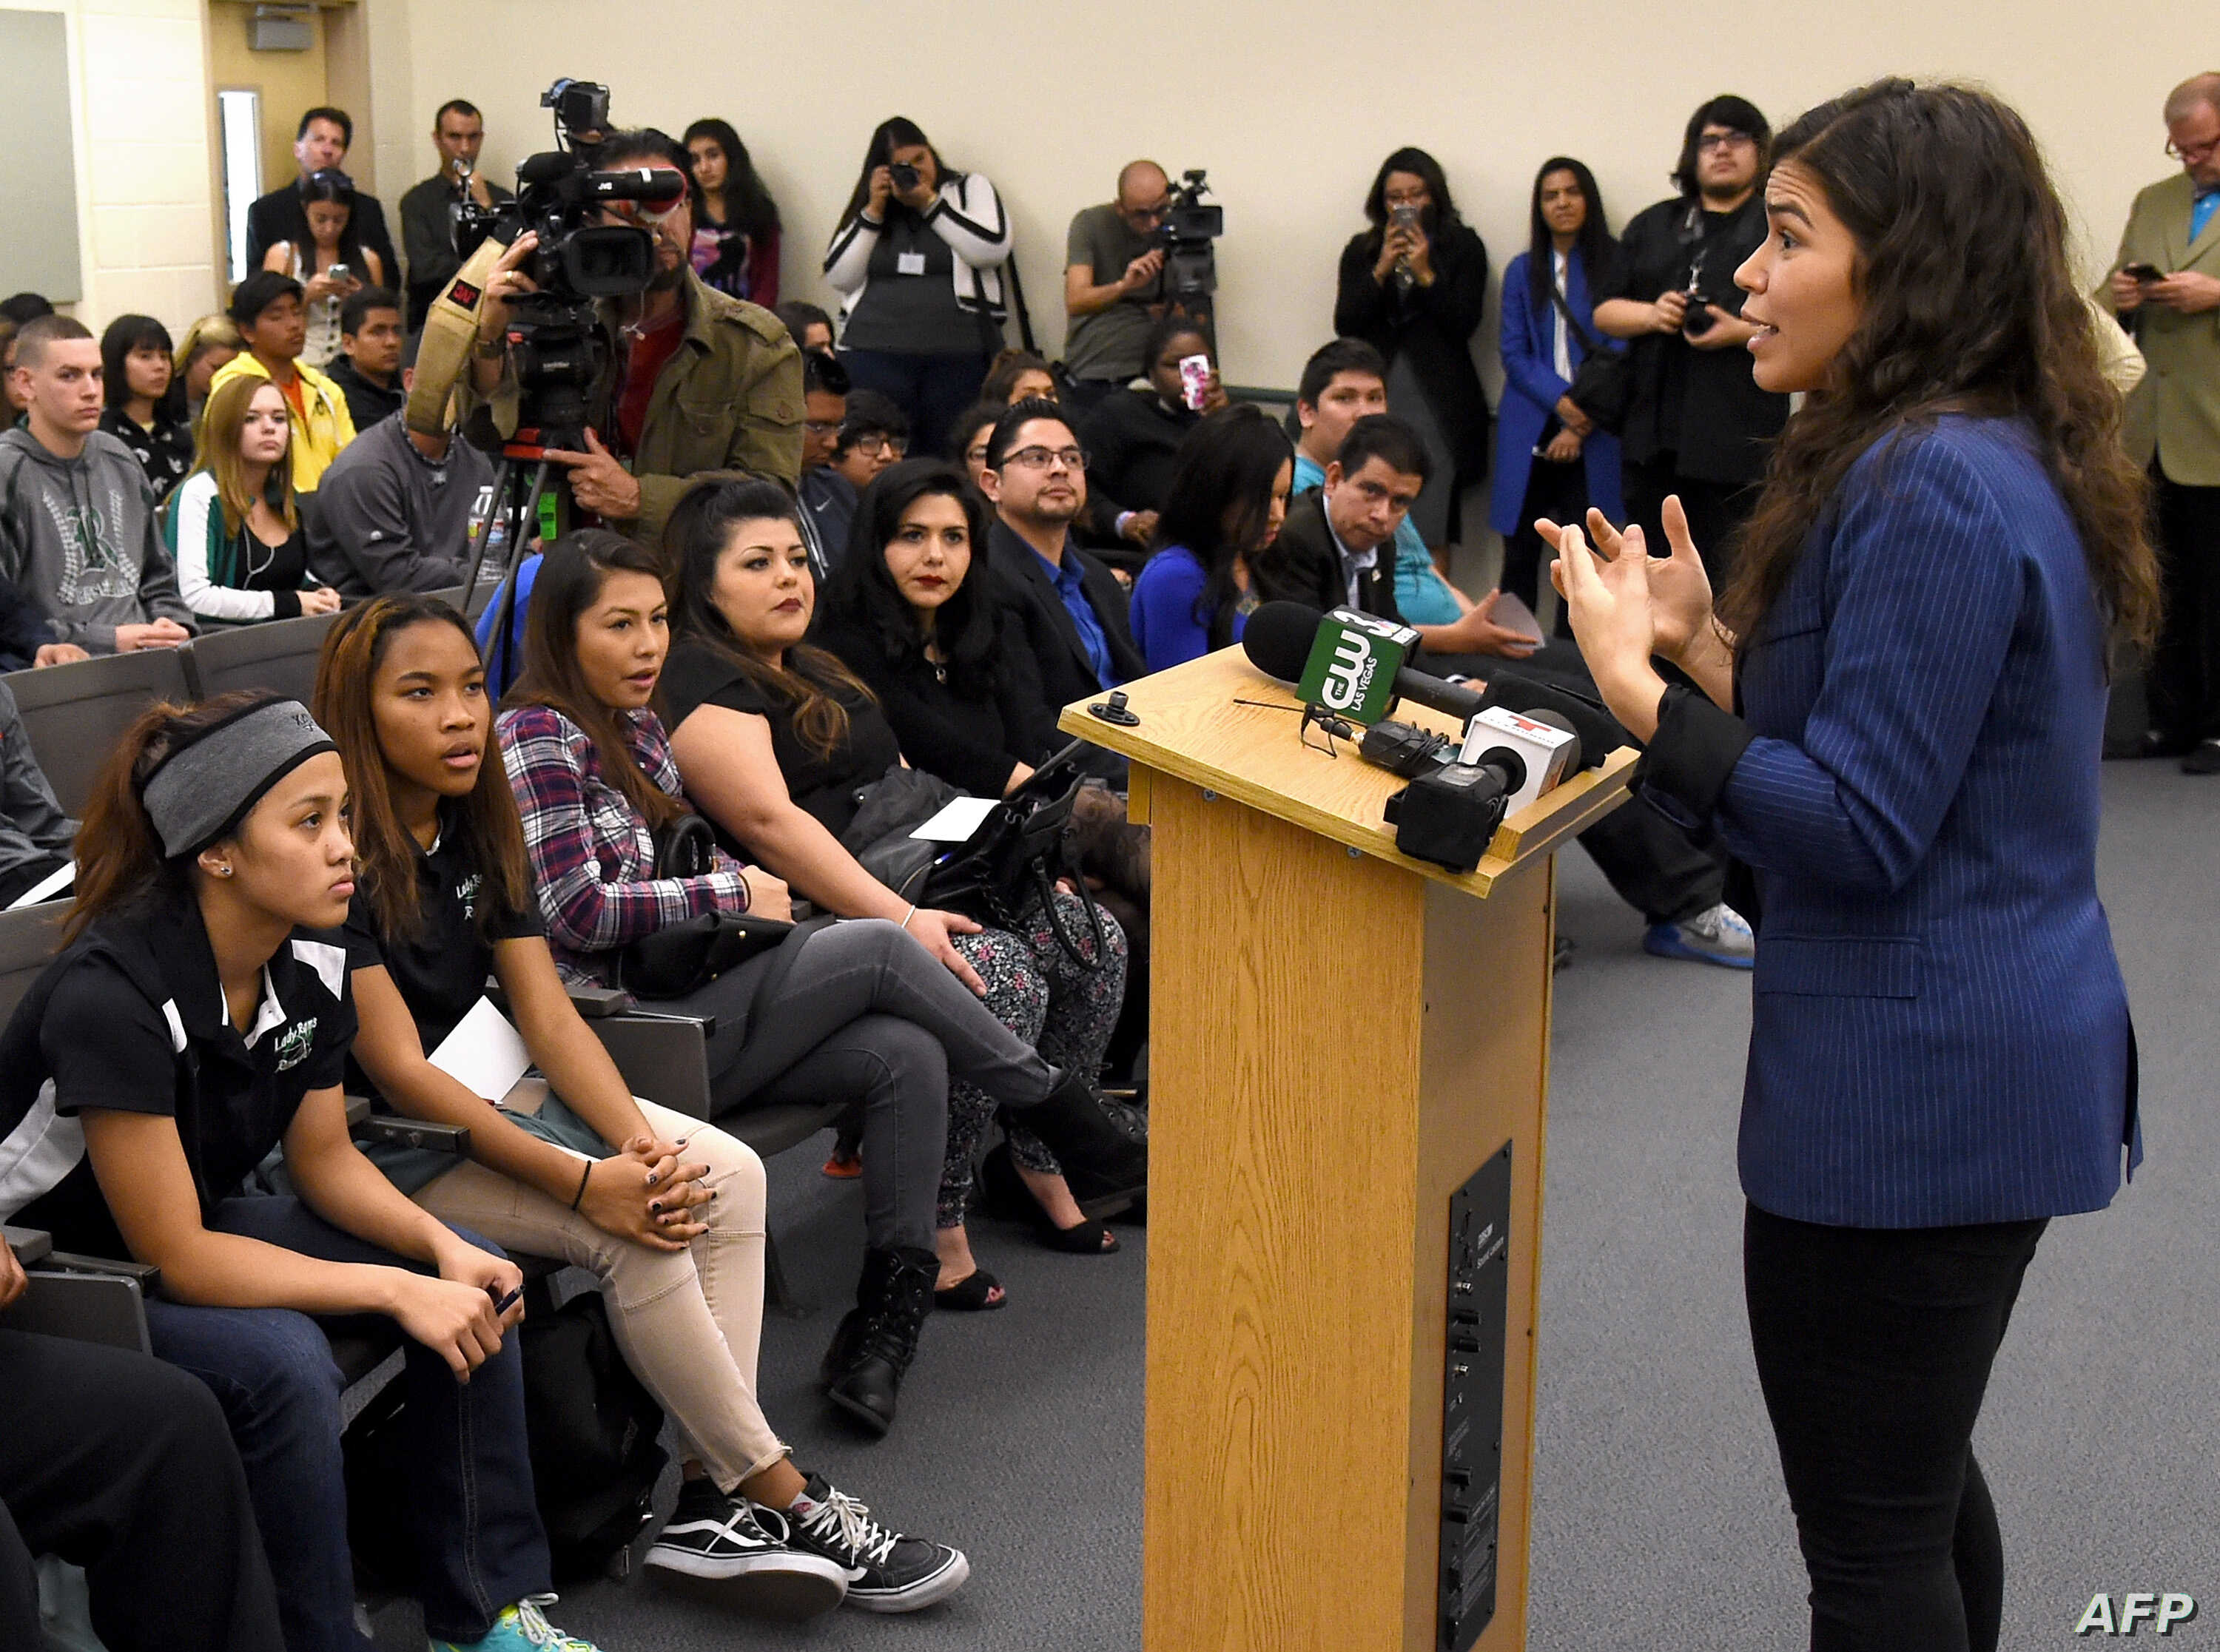 FILE - Actress America Ferrera talks to students at Rancho High School as she partners with Voto Latino to discuss the importance of young voters, including Latinos, participating in the civic process on February 11, 2016 in North Las Vegas, Nevada.